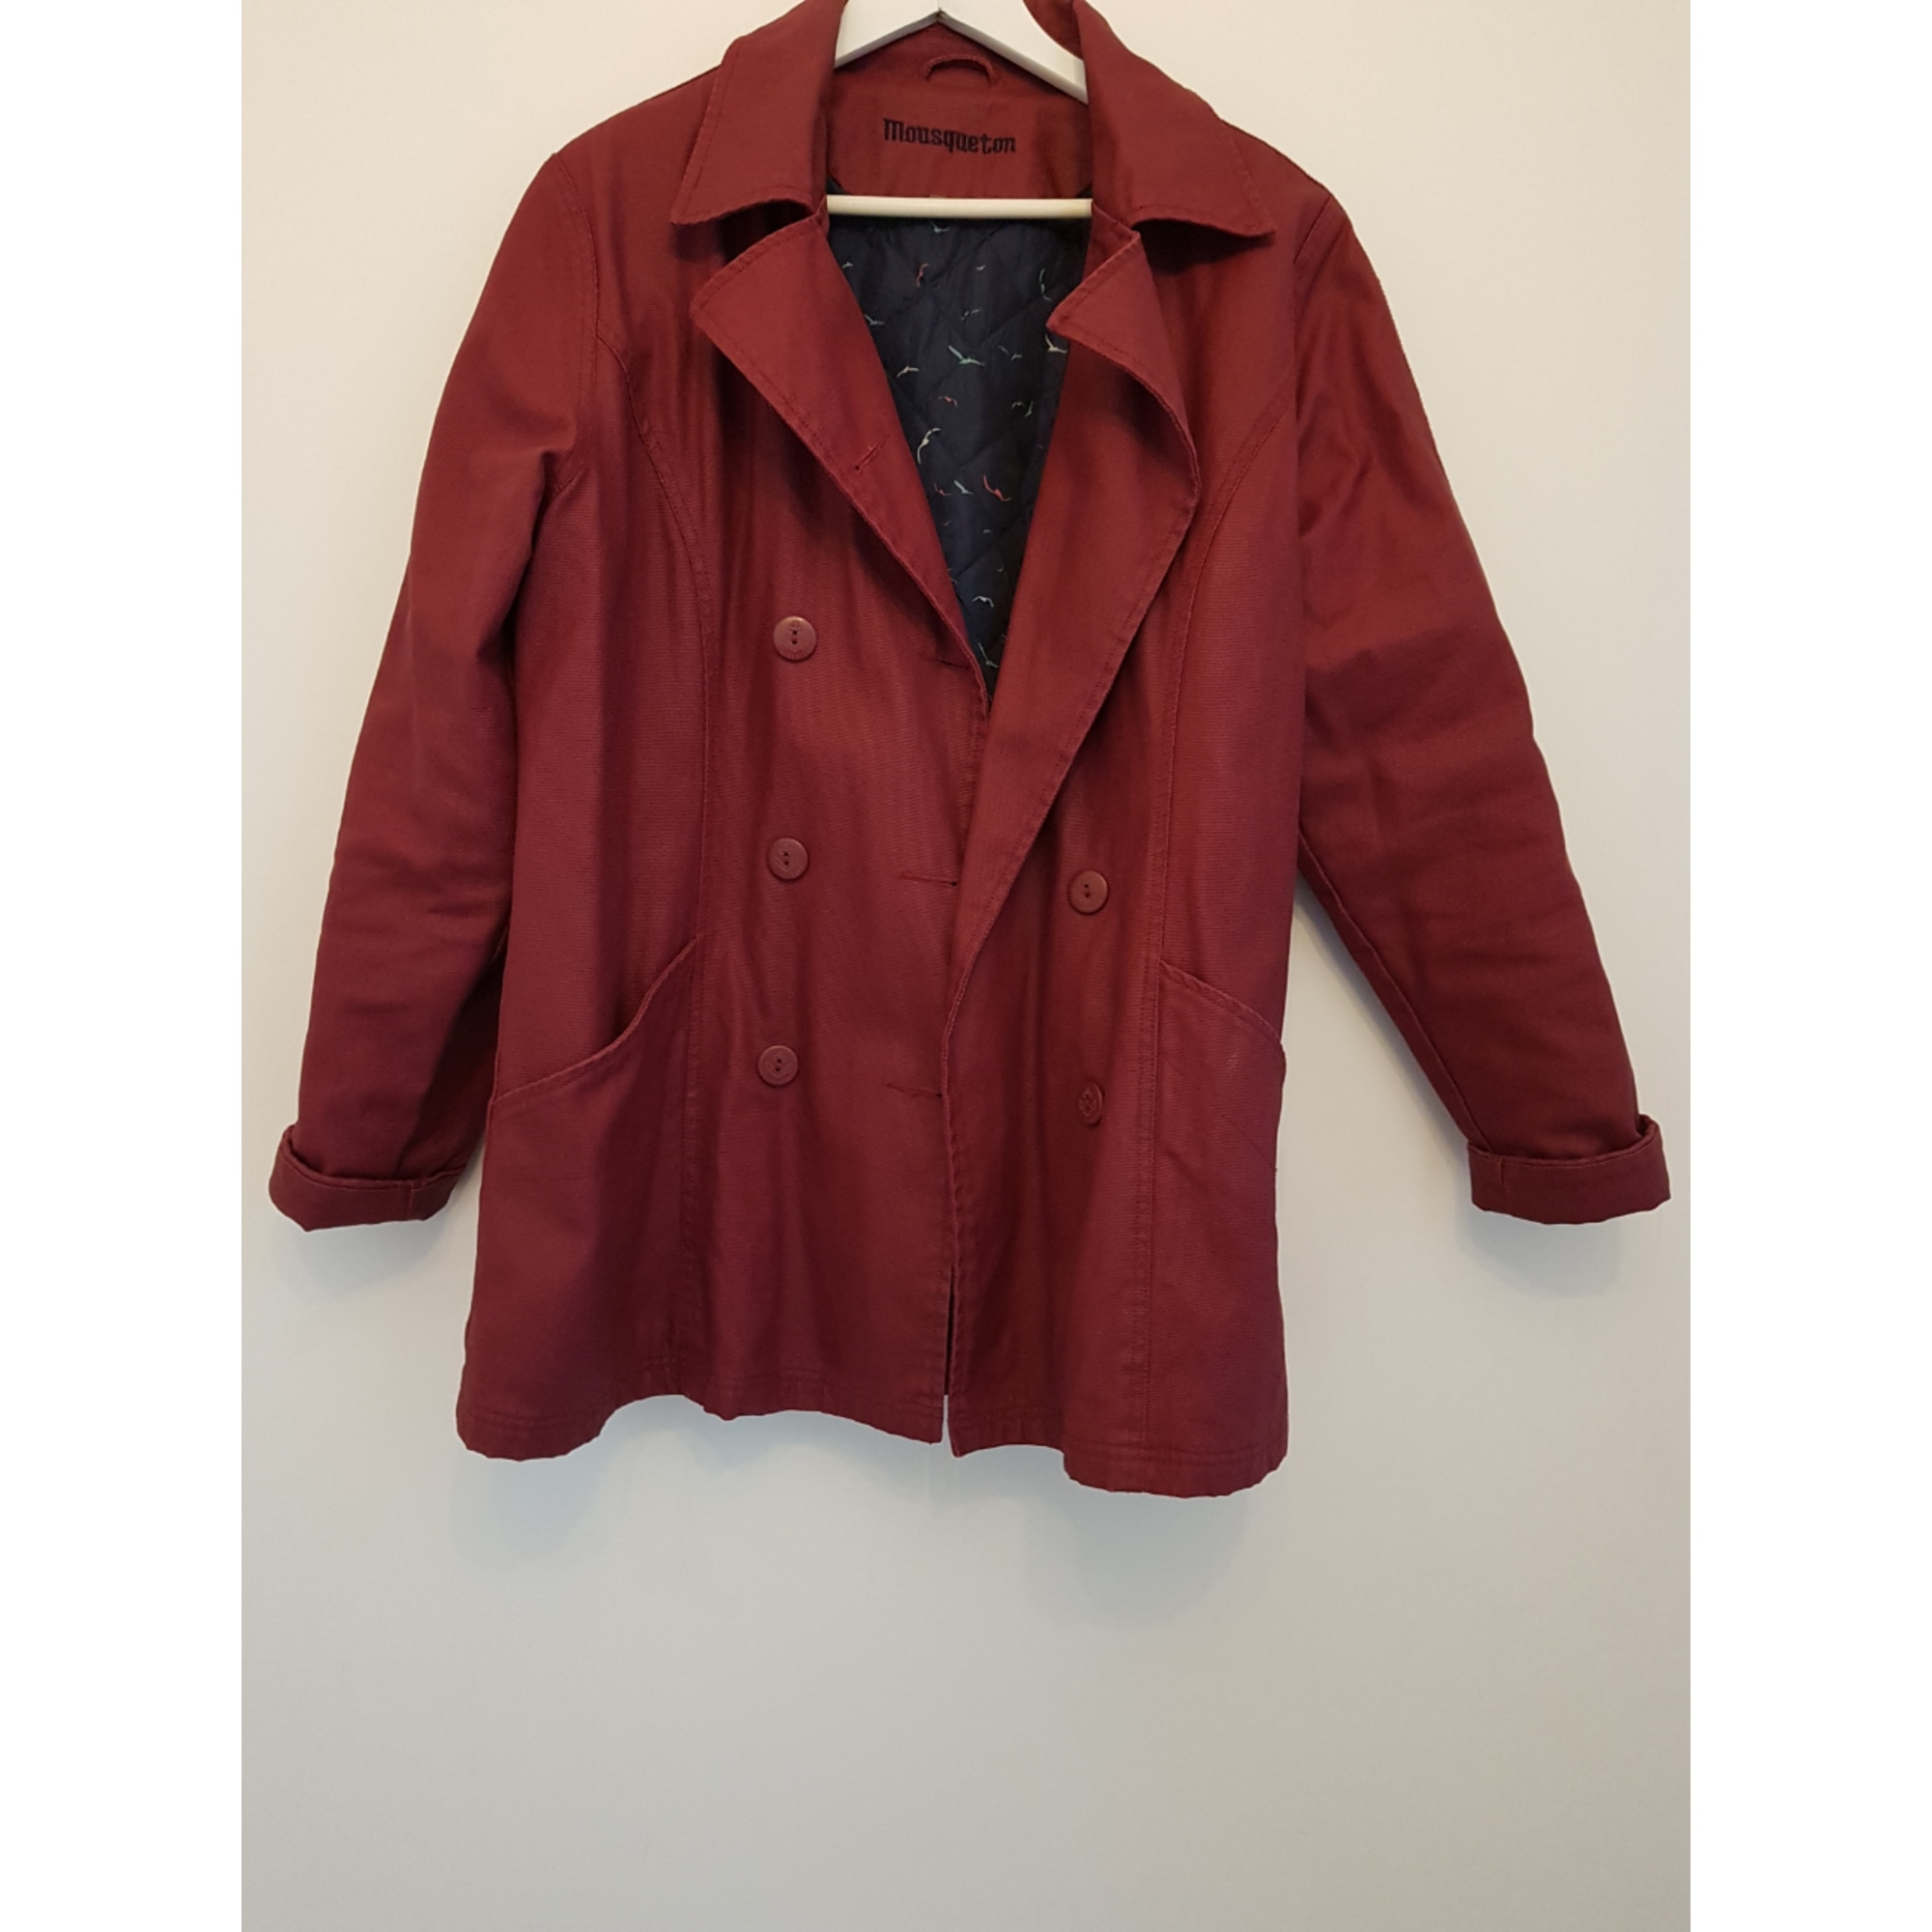 Imperméable, trench MOUSQUETON Rouge, bordeaux